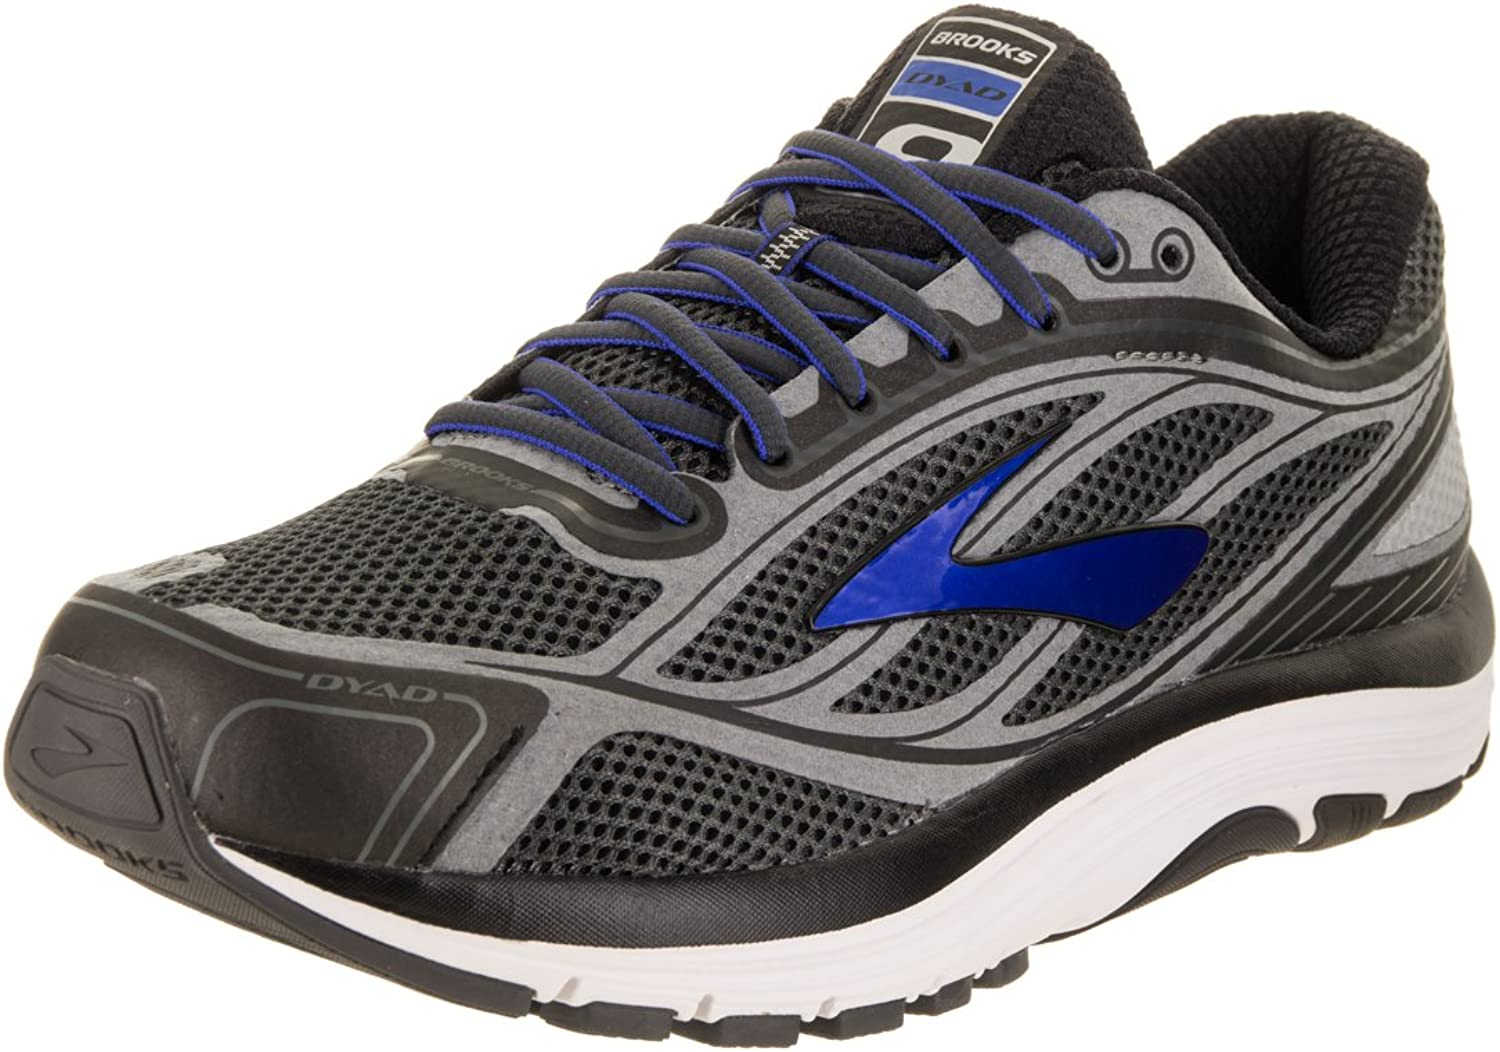 Brooks Brooks Men's Dyad 9 Asphalt Electric Blau schwarz 8.5 EE US  bester Ruf